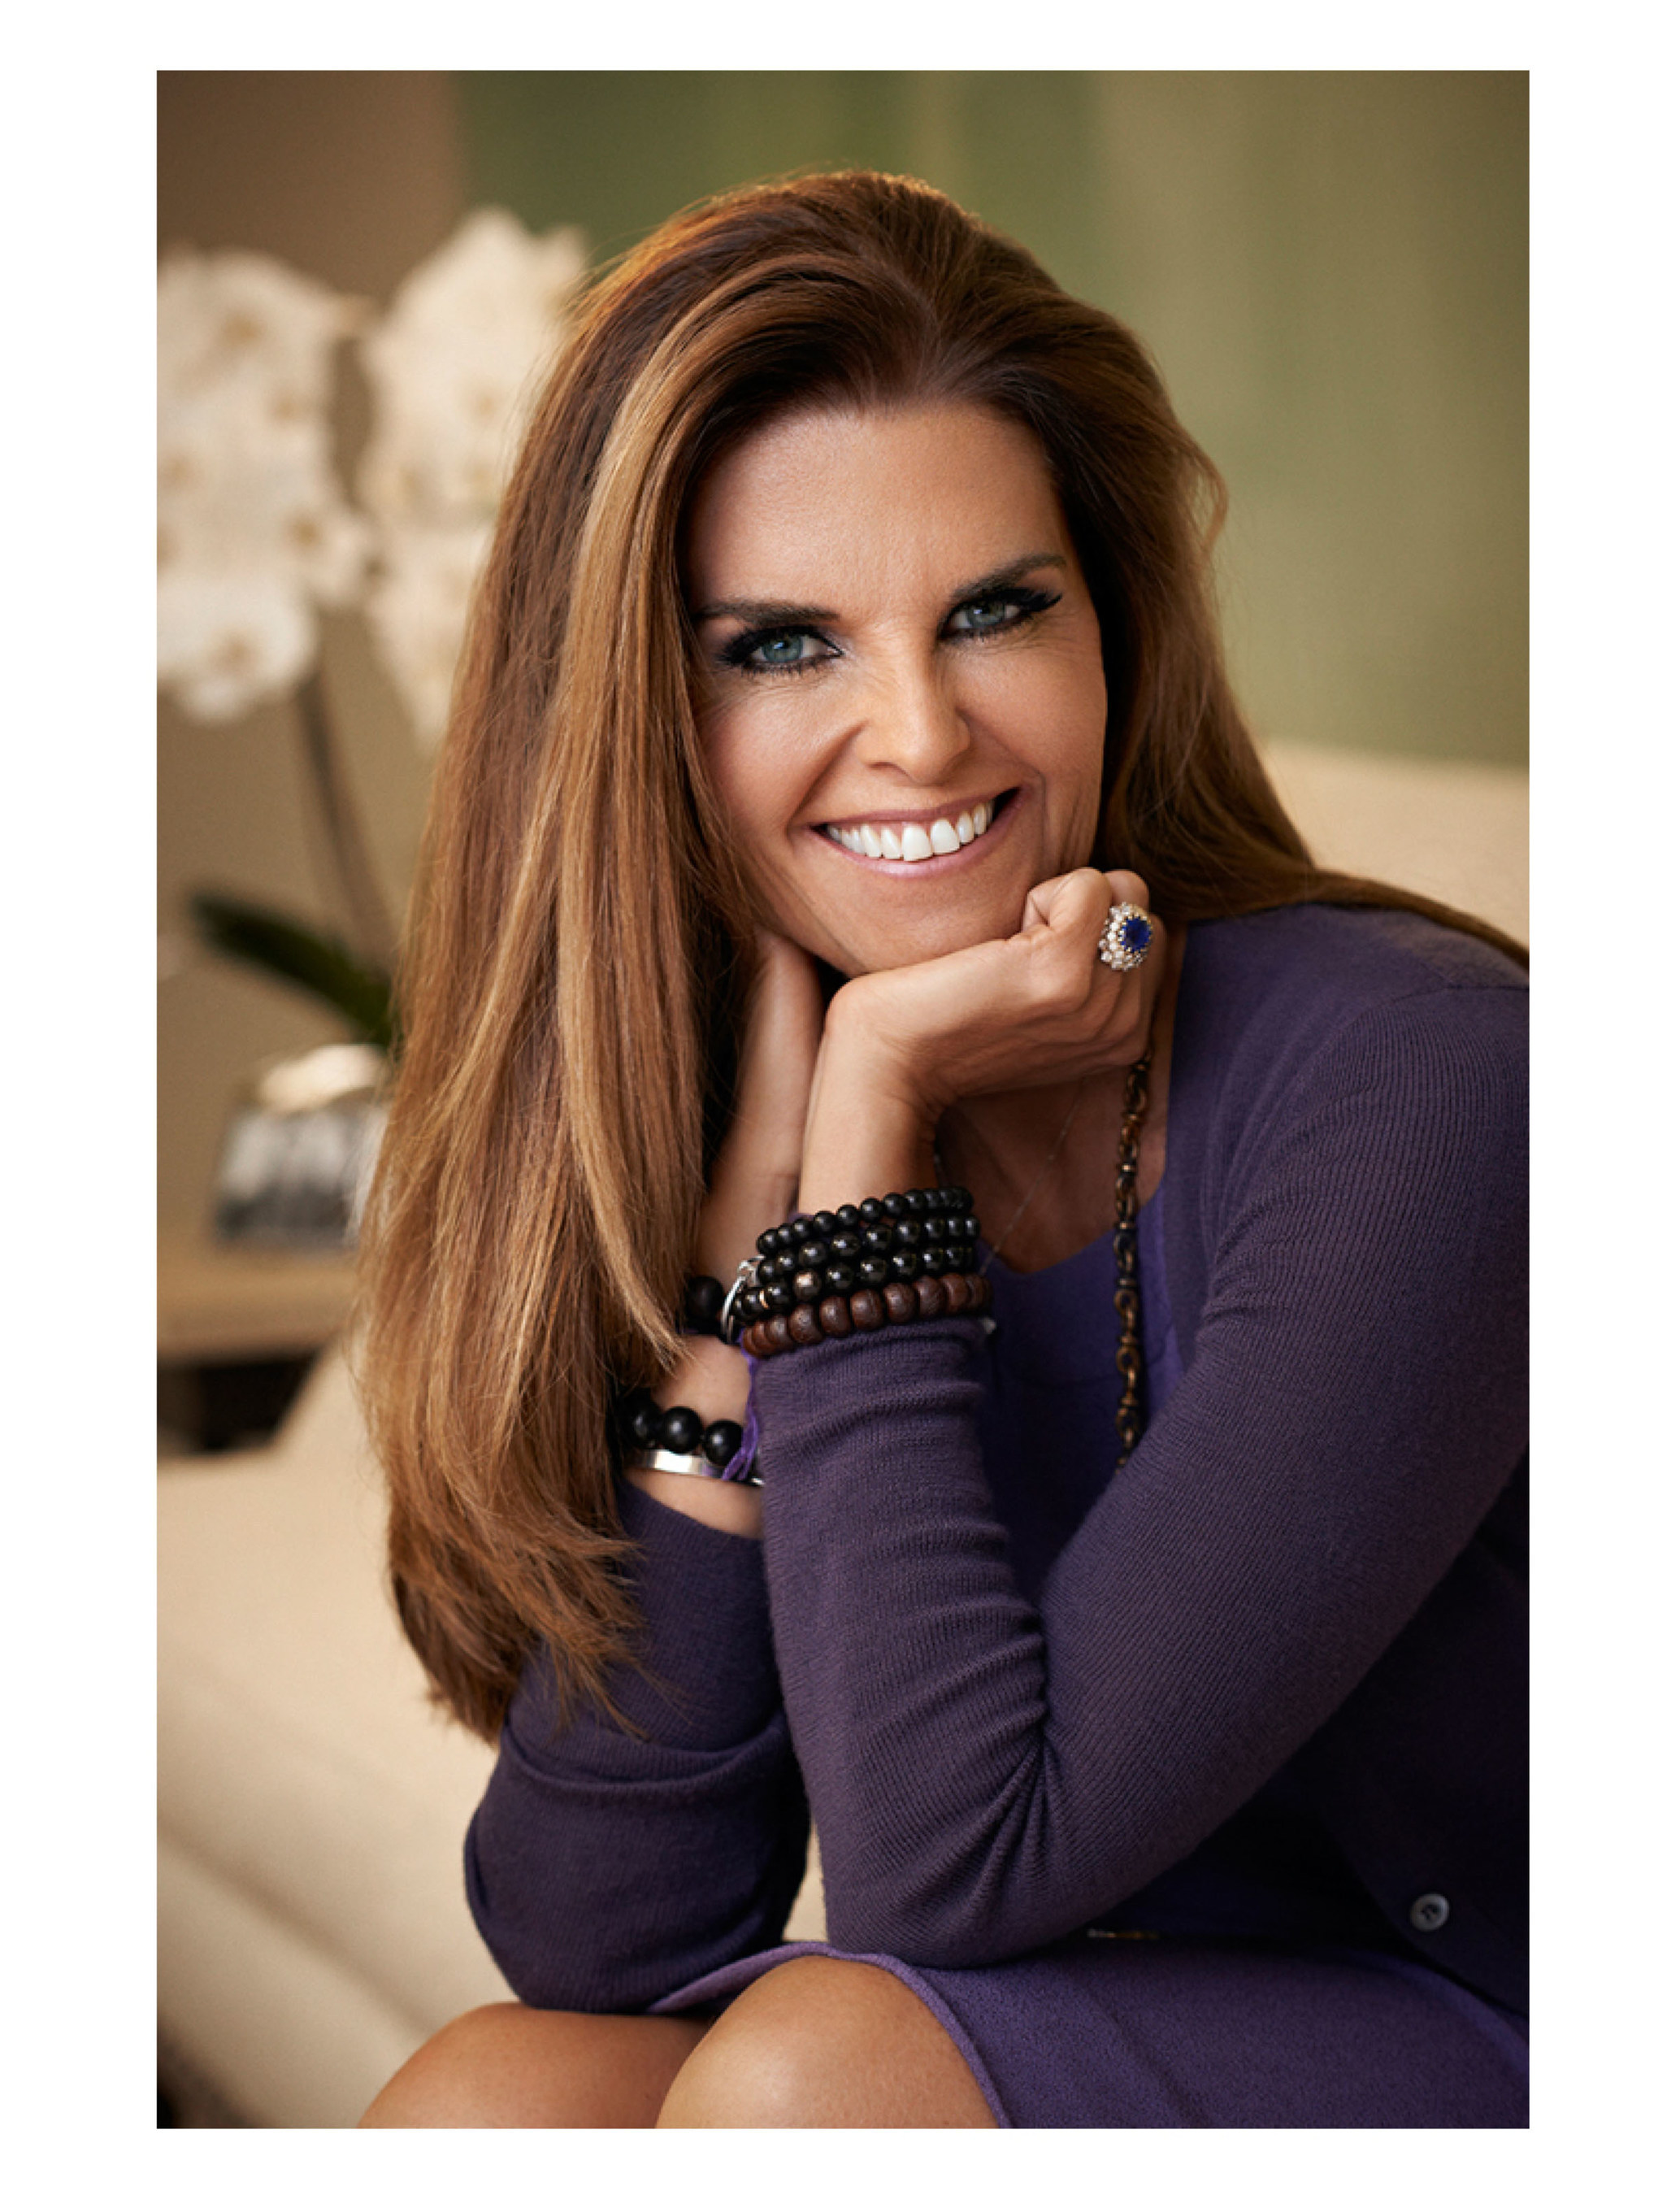 Award-winning journalist, producer, best-selling author and advocate for Alzheimer's disease, Maria Shriver, launches new campaign in partnership with the Alzheimer's Association to Wipe Out Alzheimer's. To learn more, visit www.WipeOutAlzheimers.org.  Credit:  Kwaku Alston